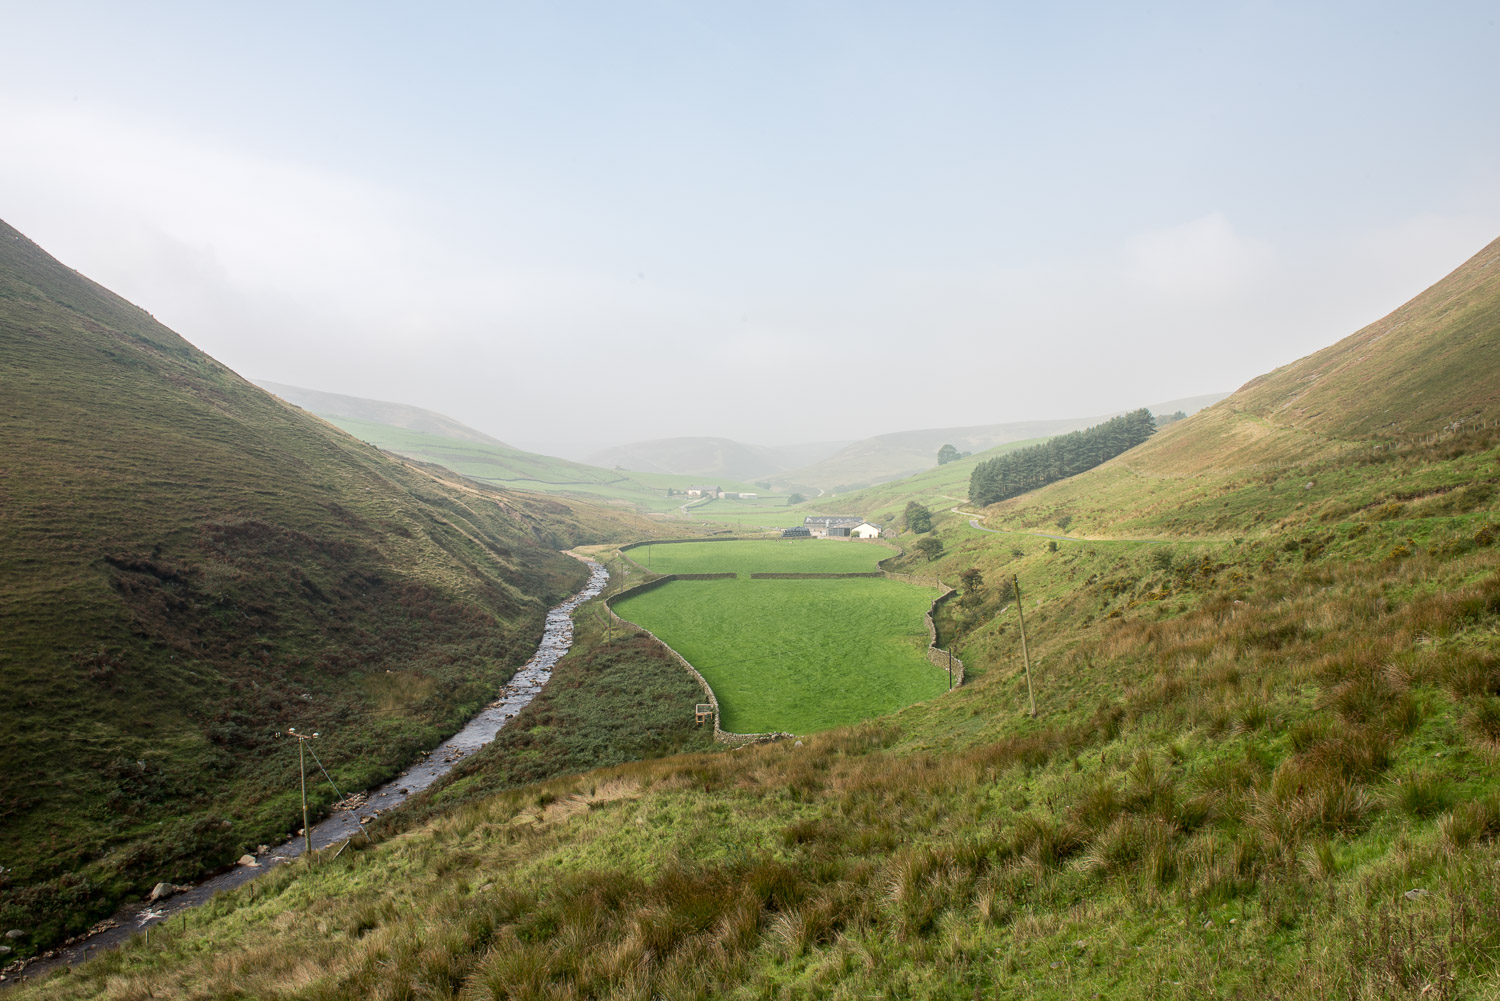 Brennand Farm, Forest of Bowland, Lancashire - September 2016